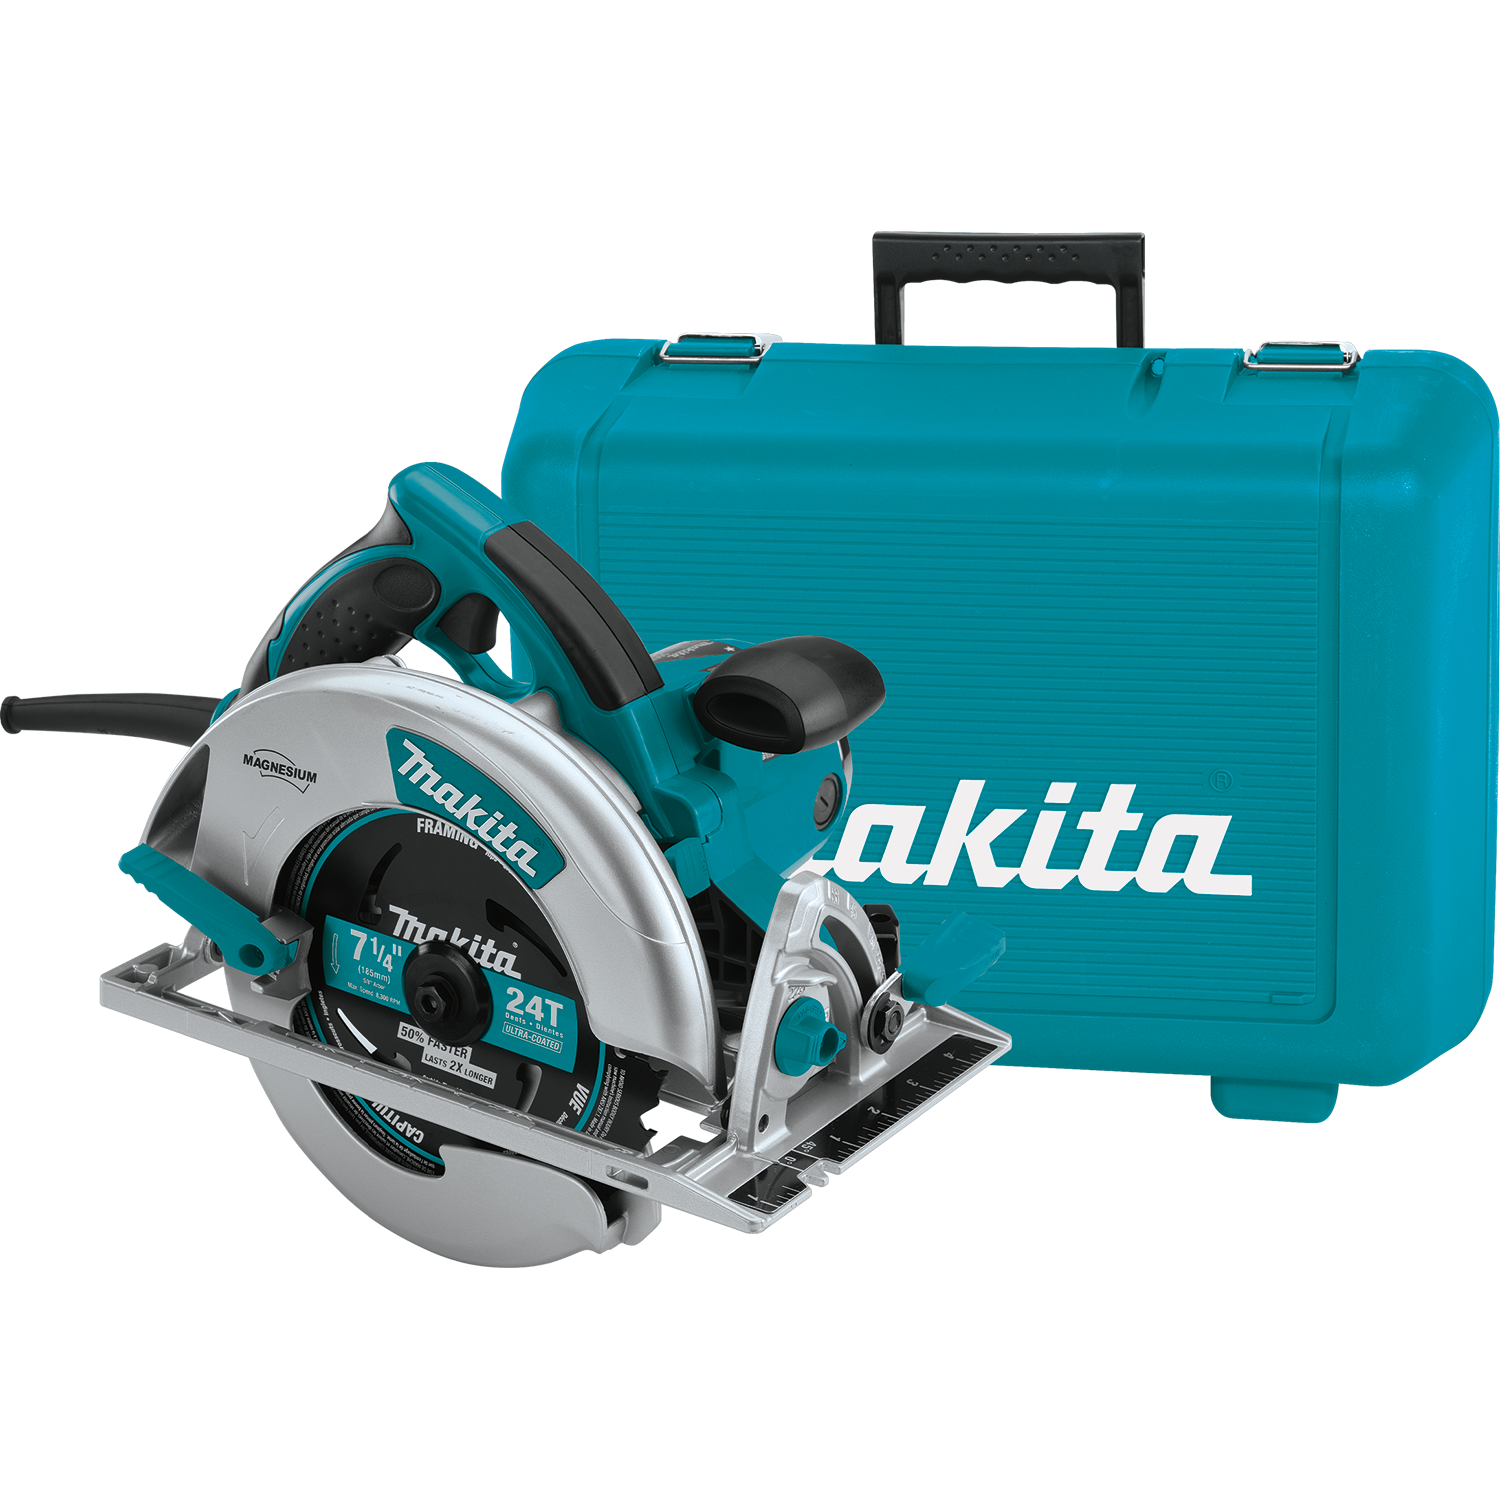 Makita Blower Wiring Diagram - Wiring Schematics